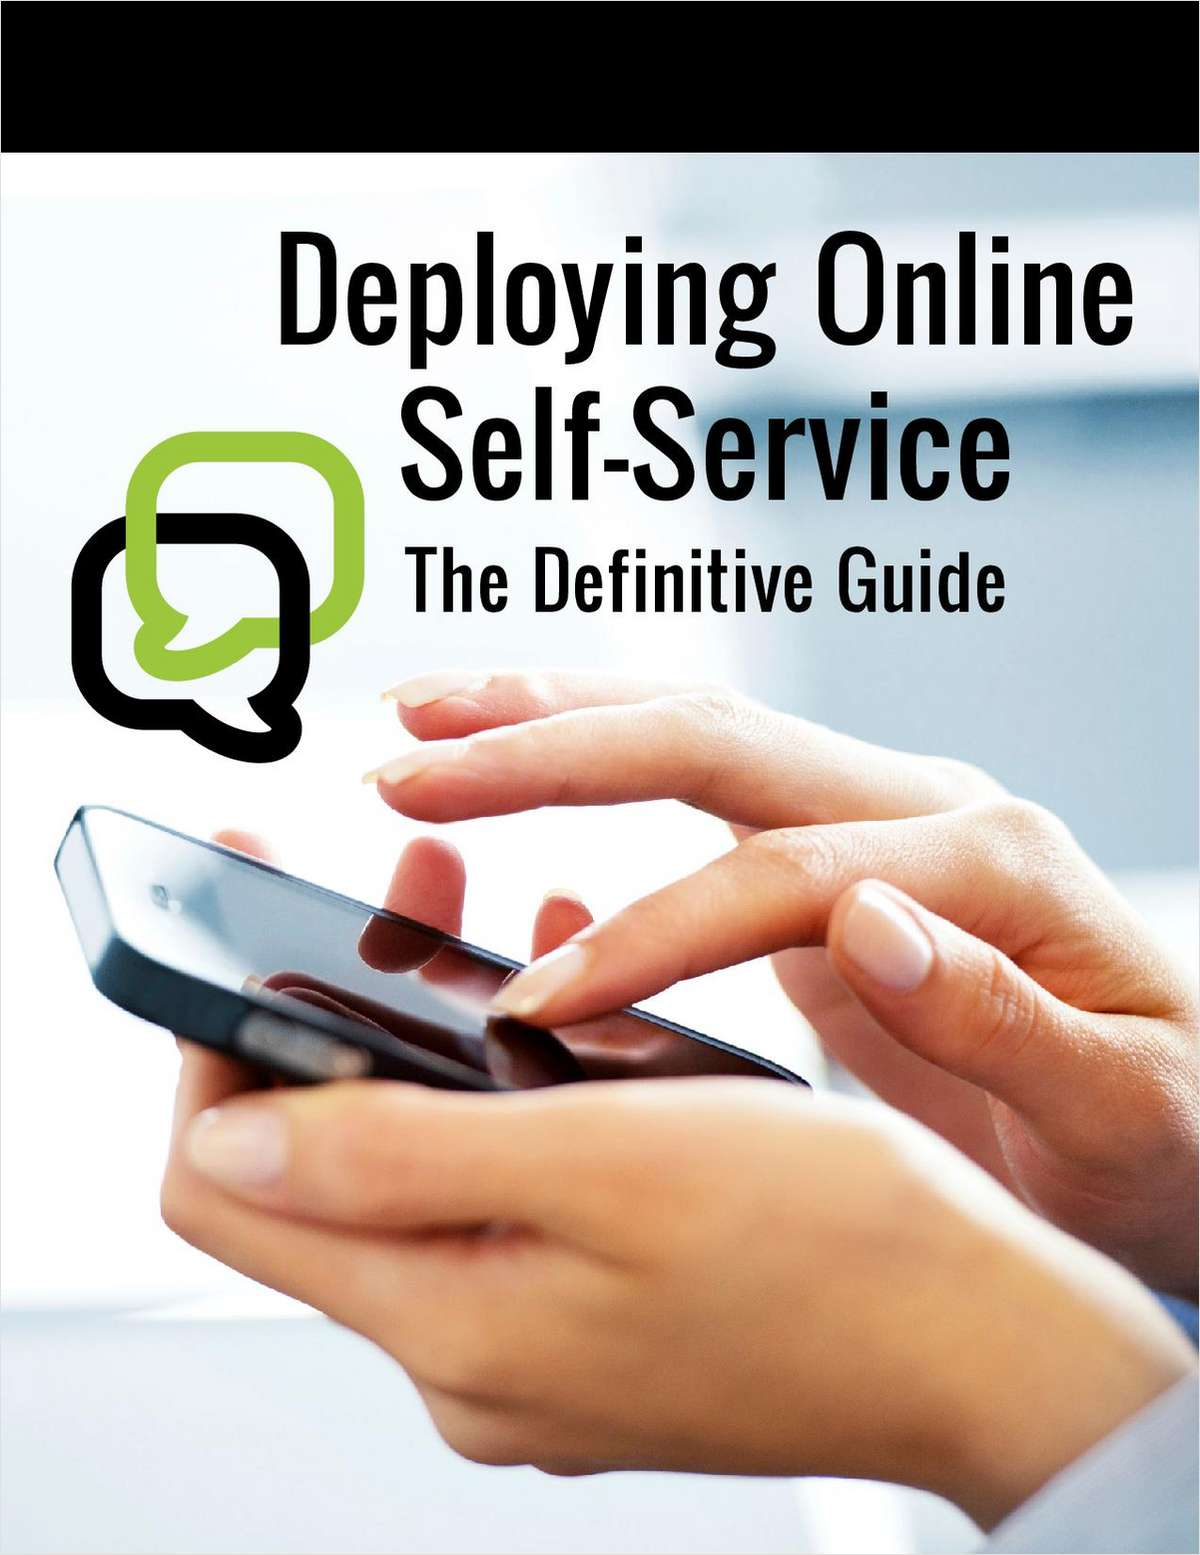 Deploying Online Self-Service: The Definitive Guide